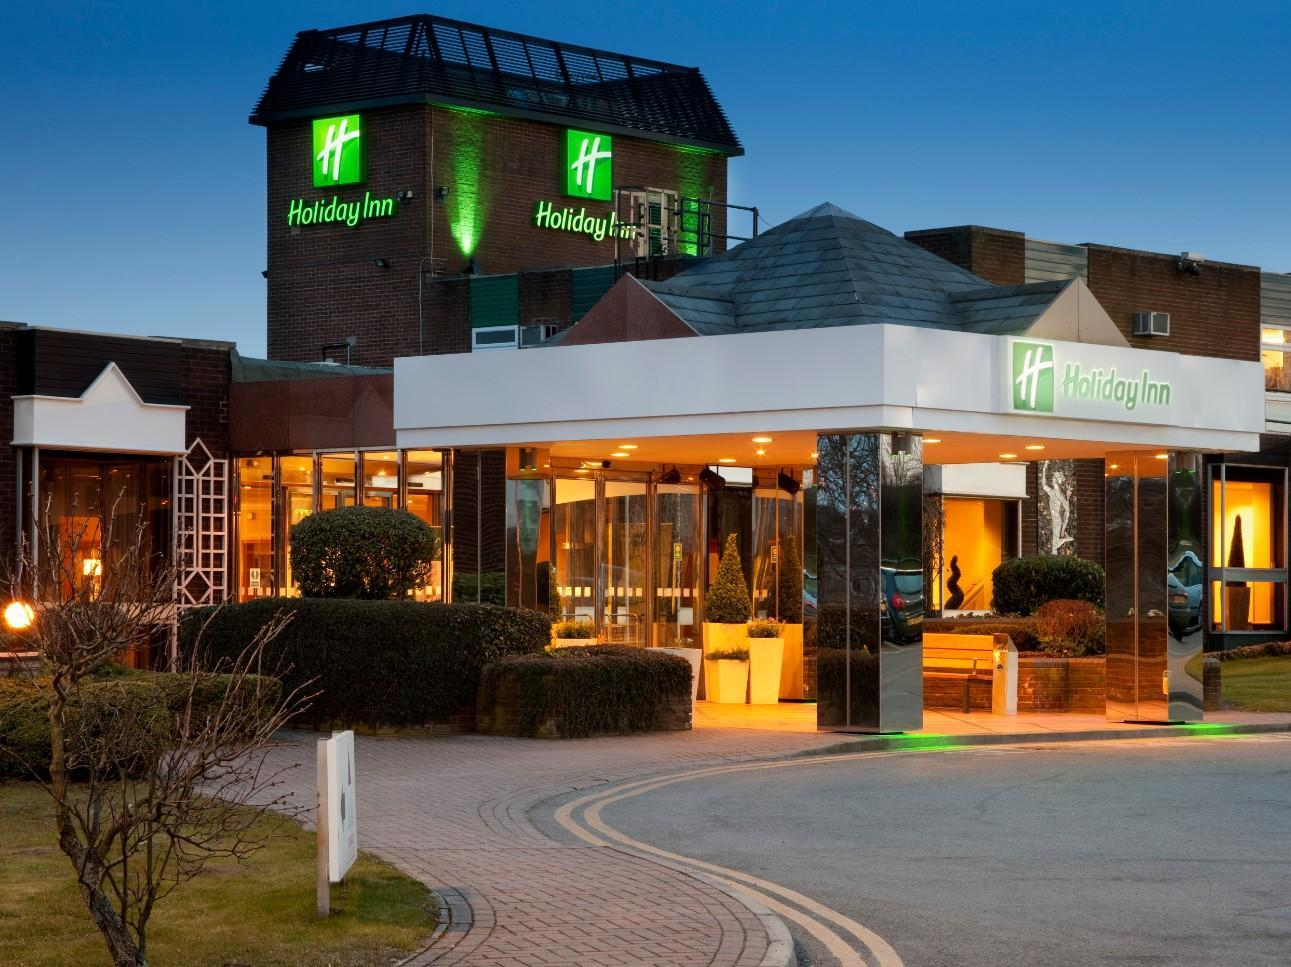 Holiday Inn Leeds Garforth Hotel Leeds